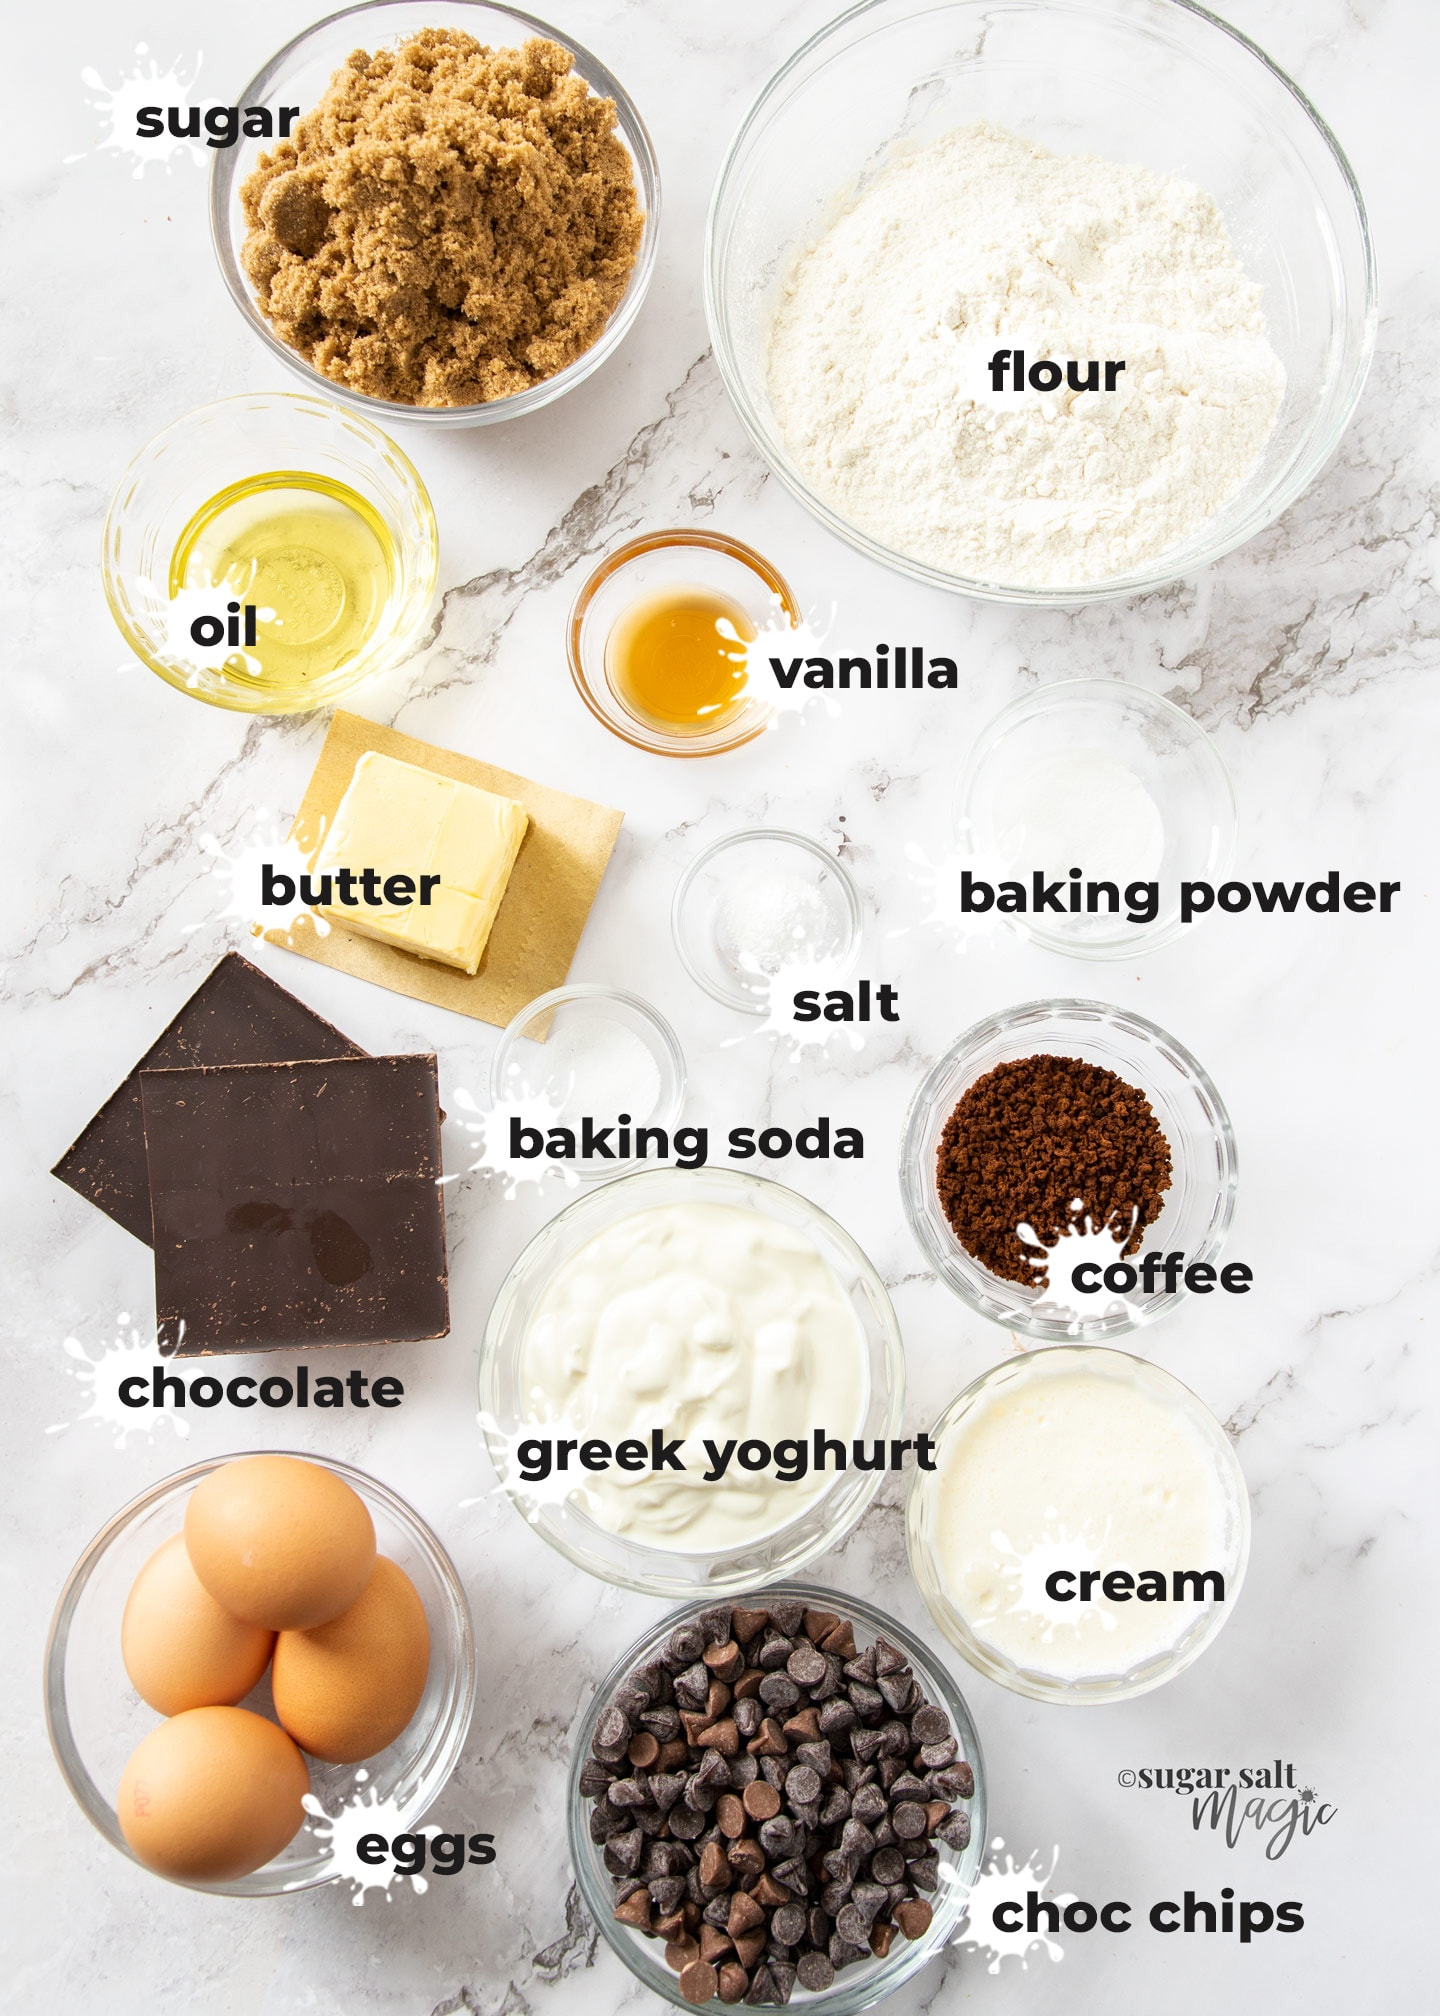 Ingredients for coffee bundt cake on a marble surface.